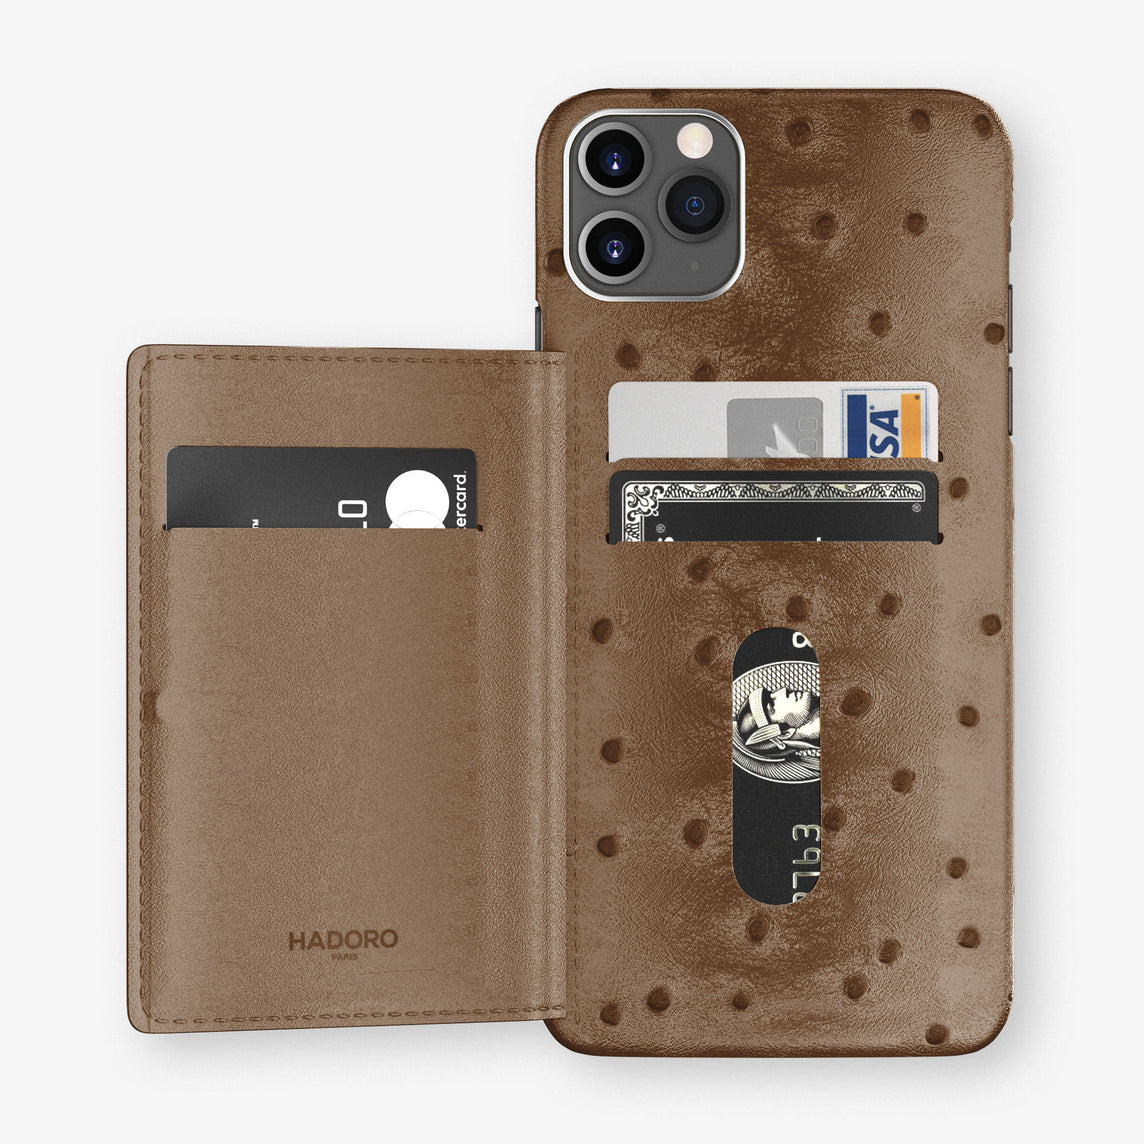 Ostrich Card Holder Flap Case iPhone 11 Pro Max | Tobacco - Stainless Steel